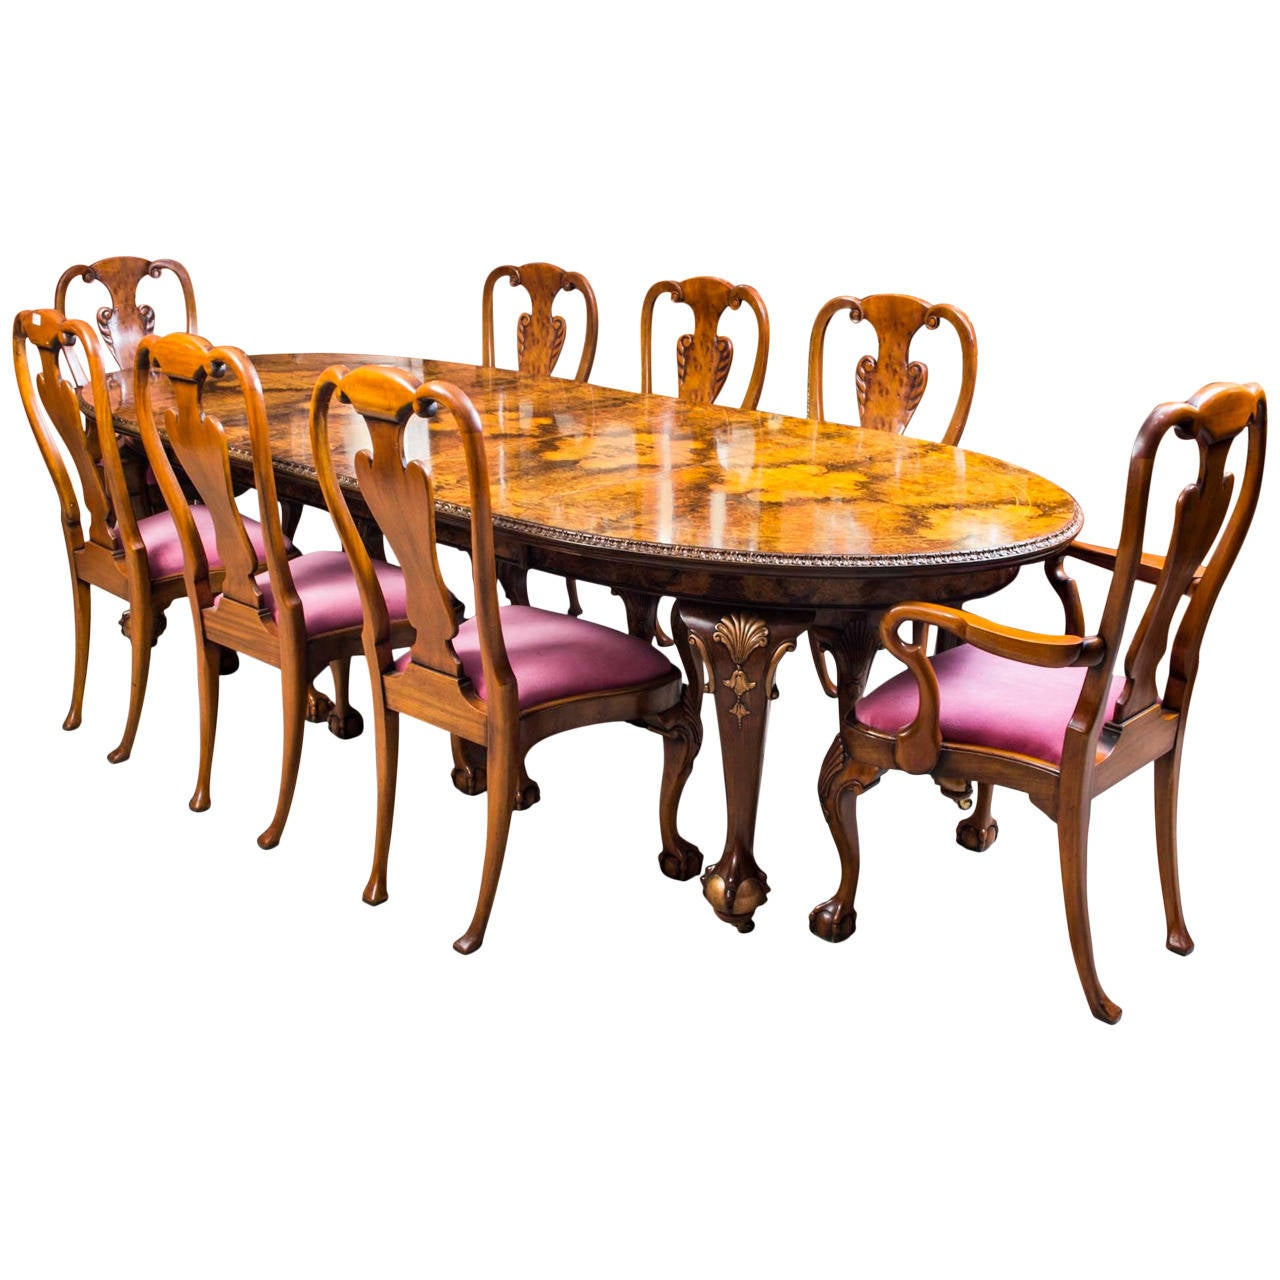 Antique Queen Anne Style Dining Table And Eight Chairs, Circa 1920 For Sale